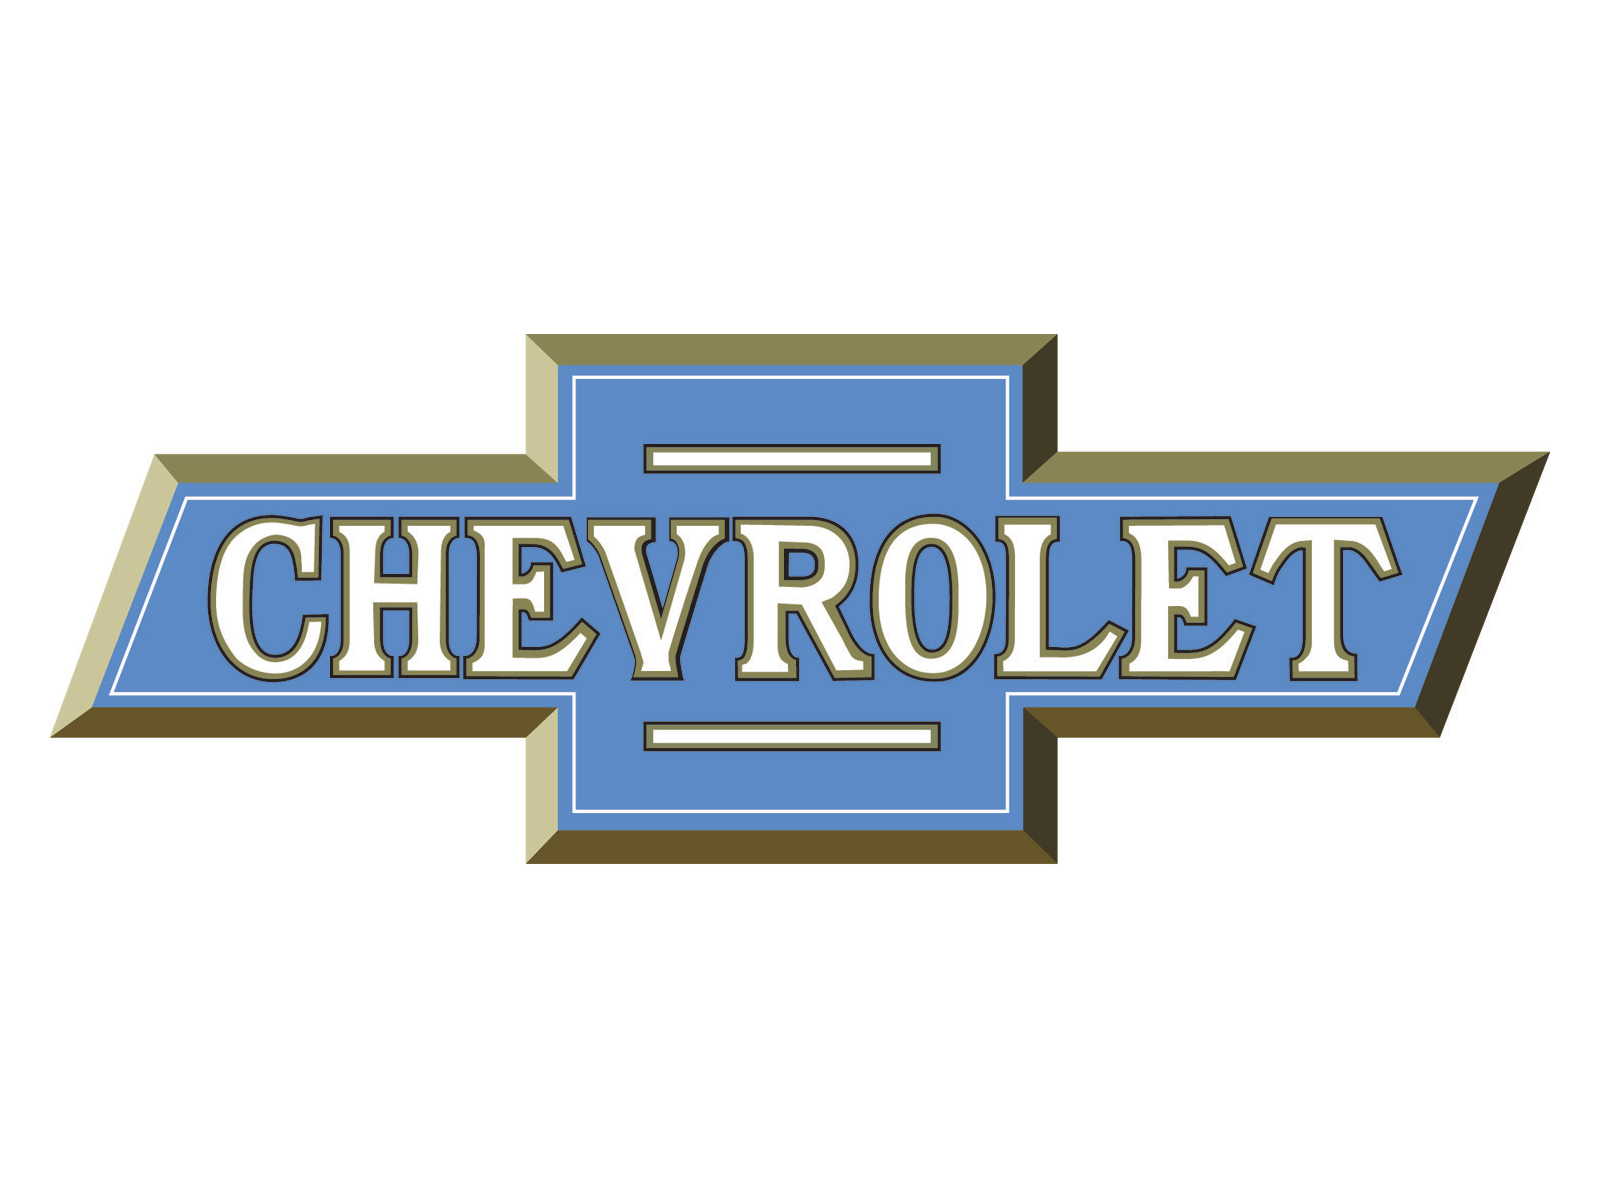 Chevy logo chevrolet car symbol meaning and history car brand old chevrolet logo biocorpaavc